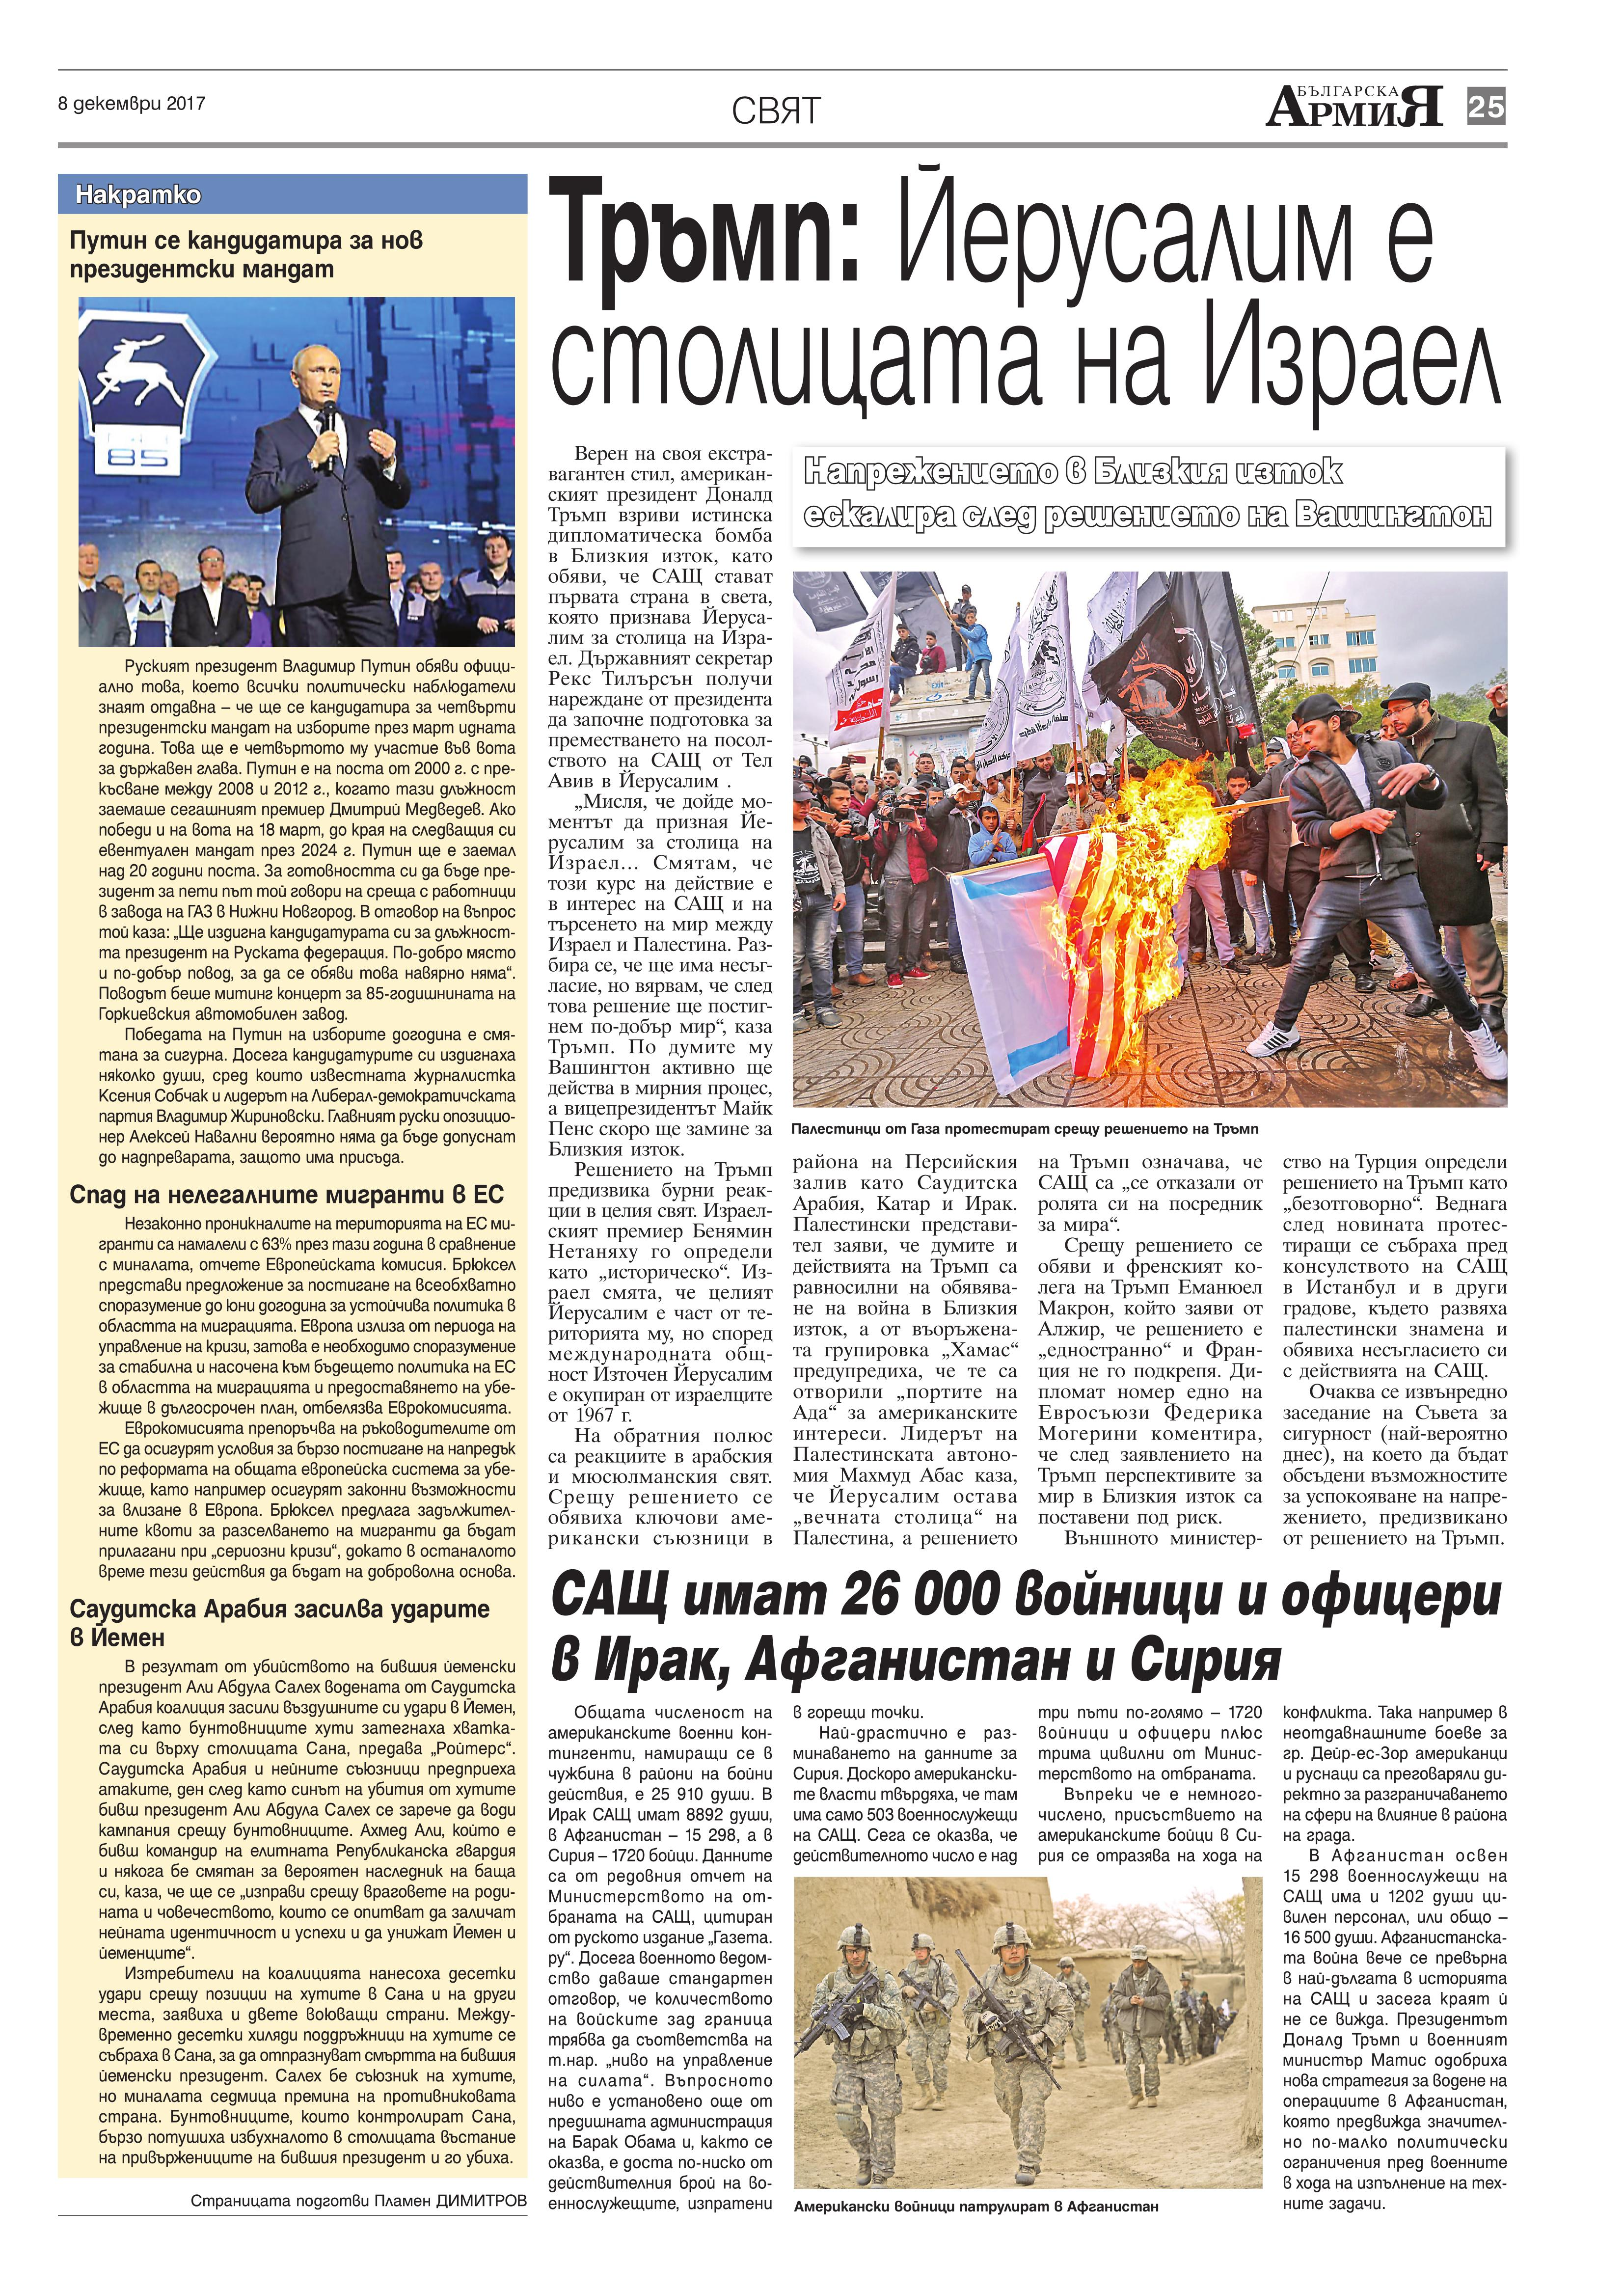 https://armymedia.bg/wp-content/uploads/2015/06/25.page1_-30.jpg